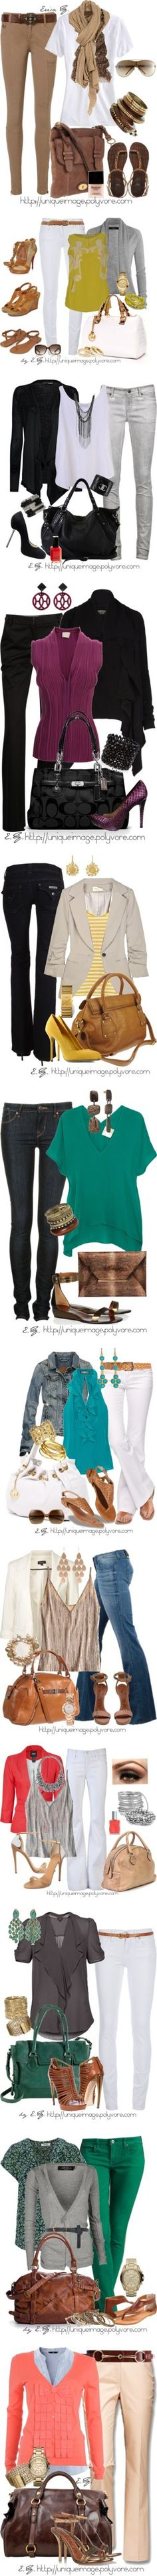 Are you a Winter?  Gorgeous Fall outfit combinations in your colors